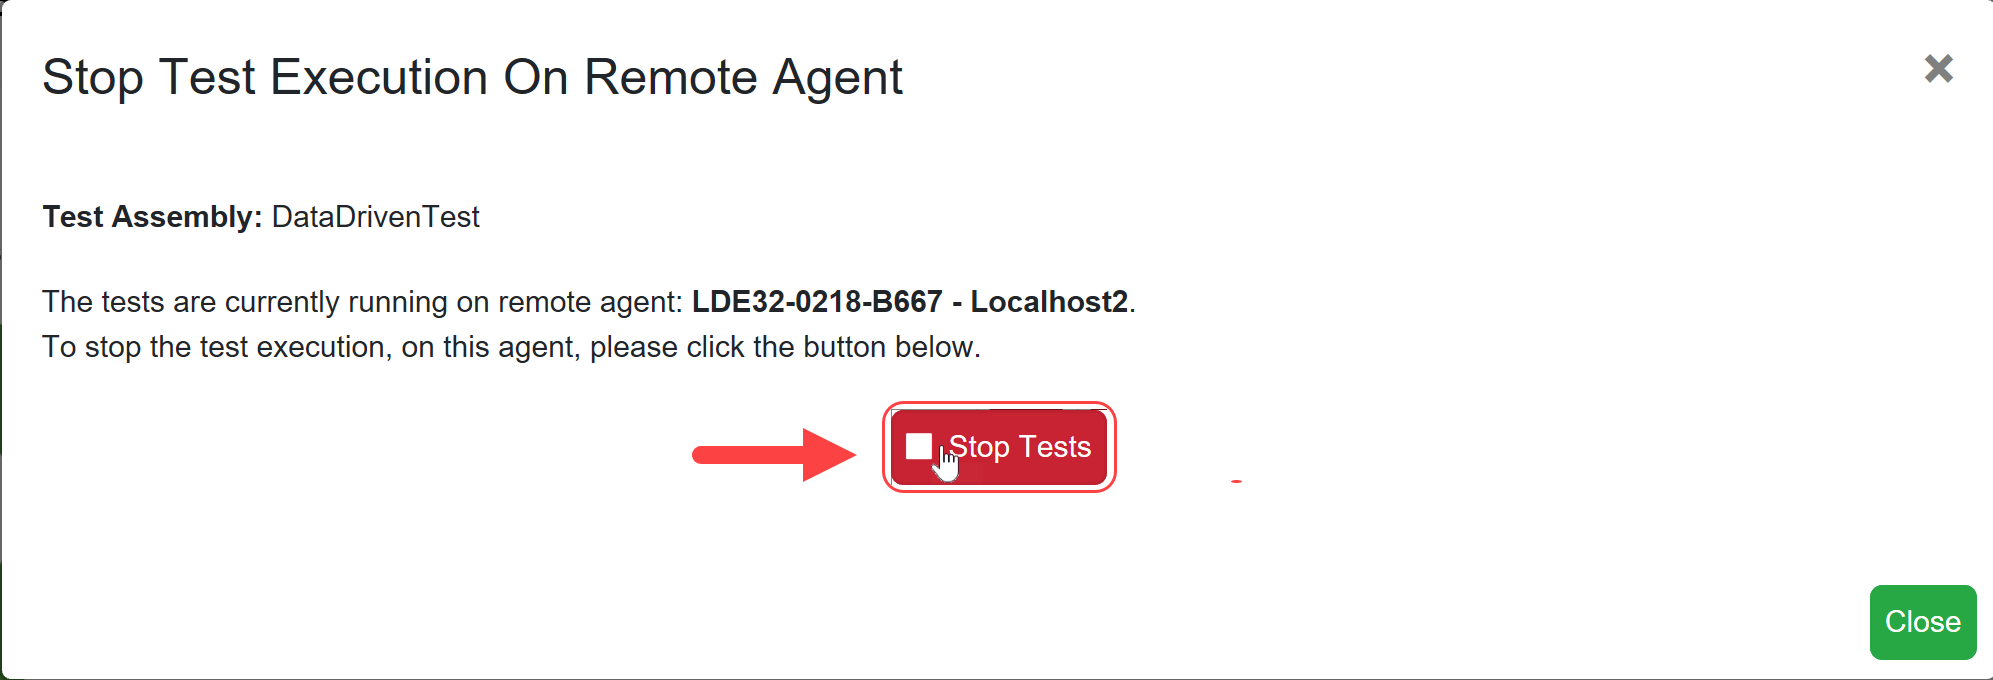 SentryOne Test Stop Test Execution On Remote Agent window